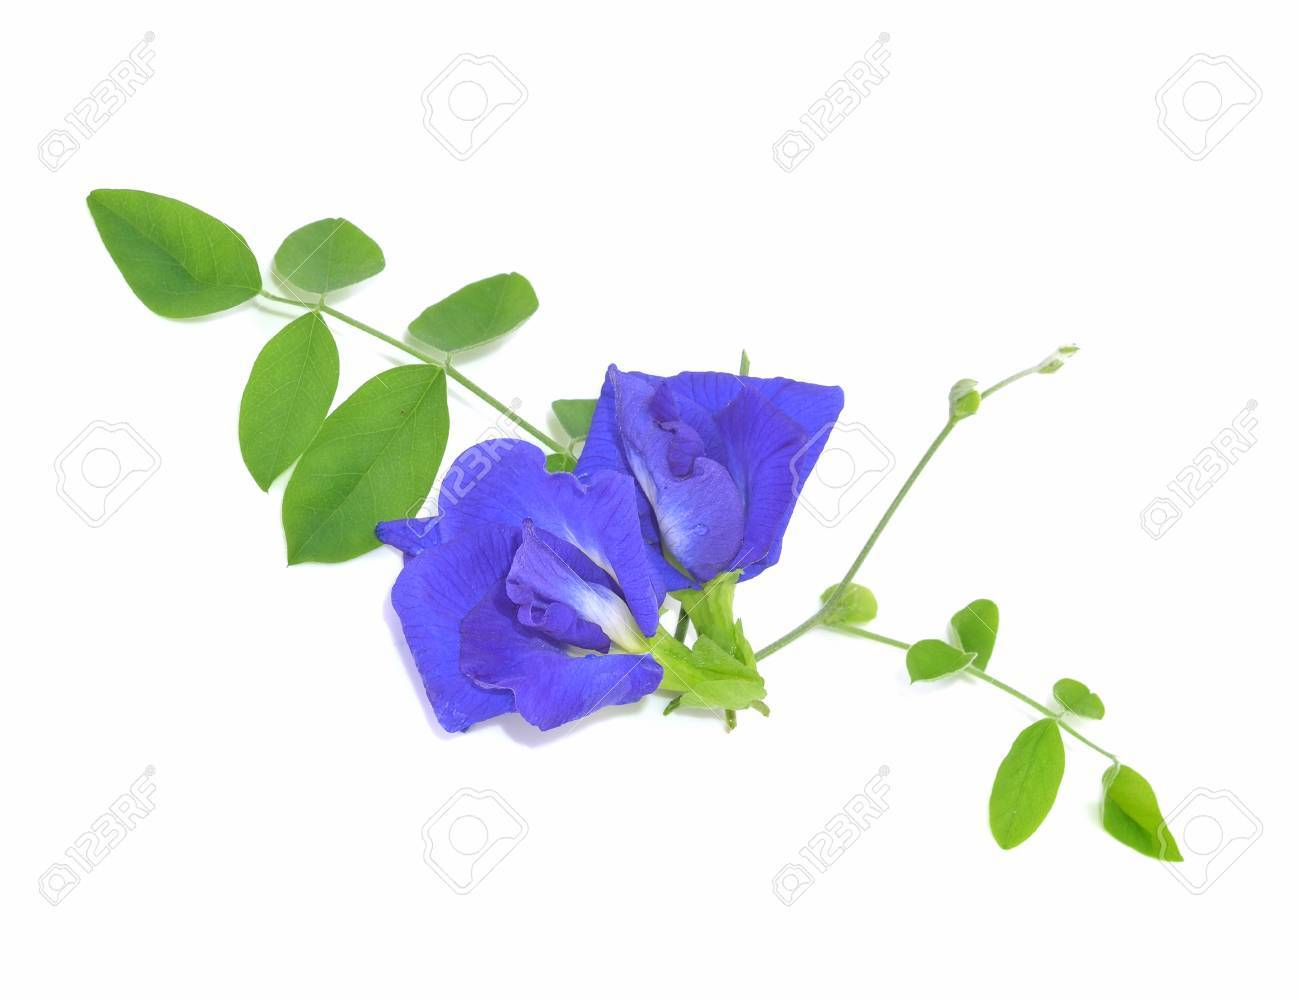 Blue Sweet Pea Flowers Isolated On White Background Stock Photo